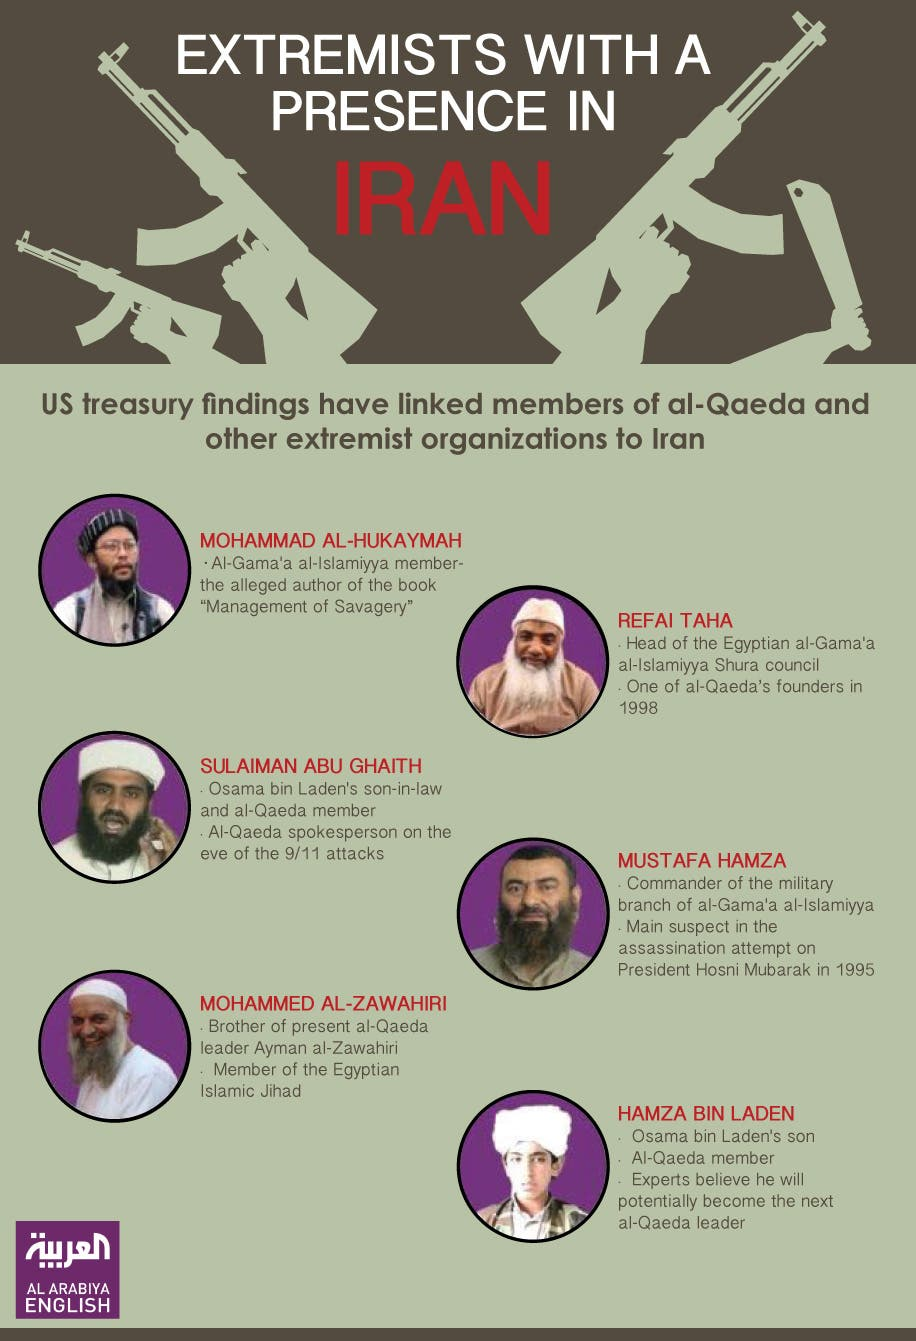 Infographic: Extremists with a presence in Iran. (Al Arabiya English)